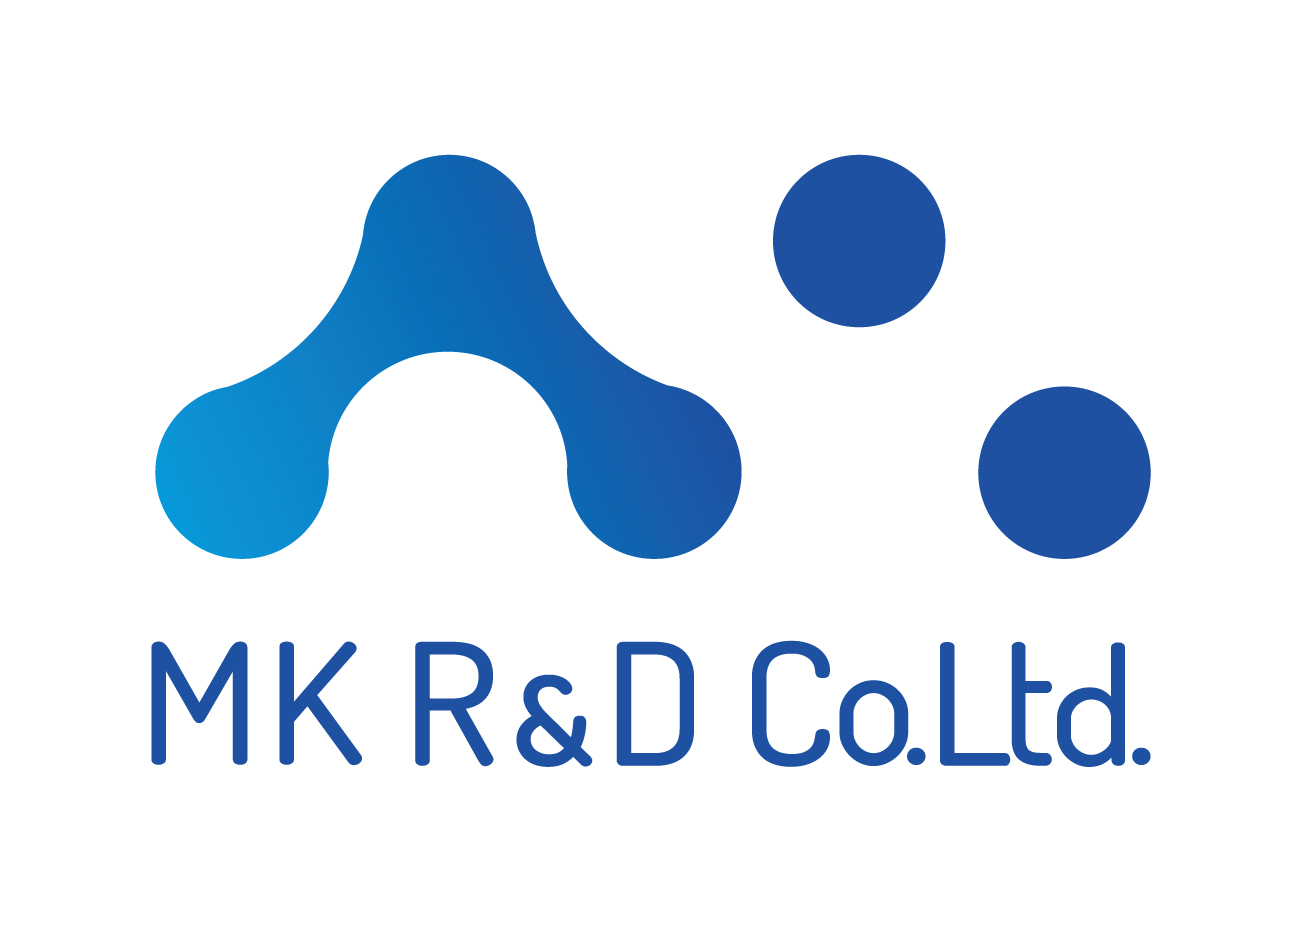 MK R&D Co., Ltd.Logo